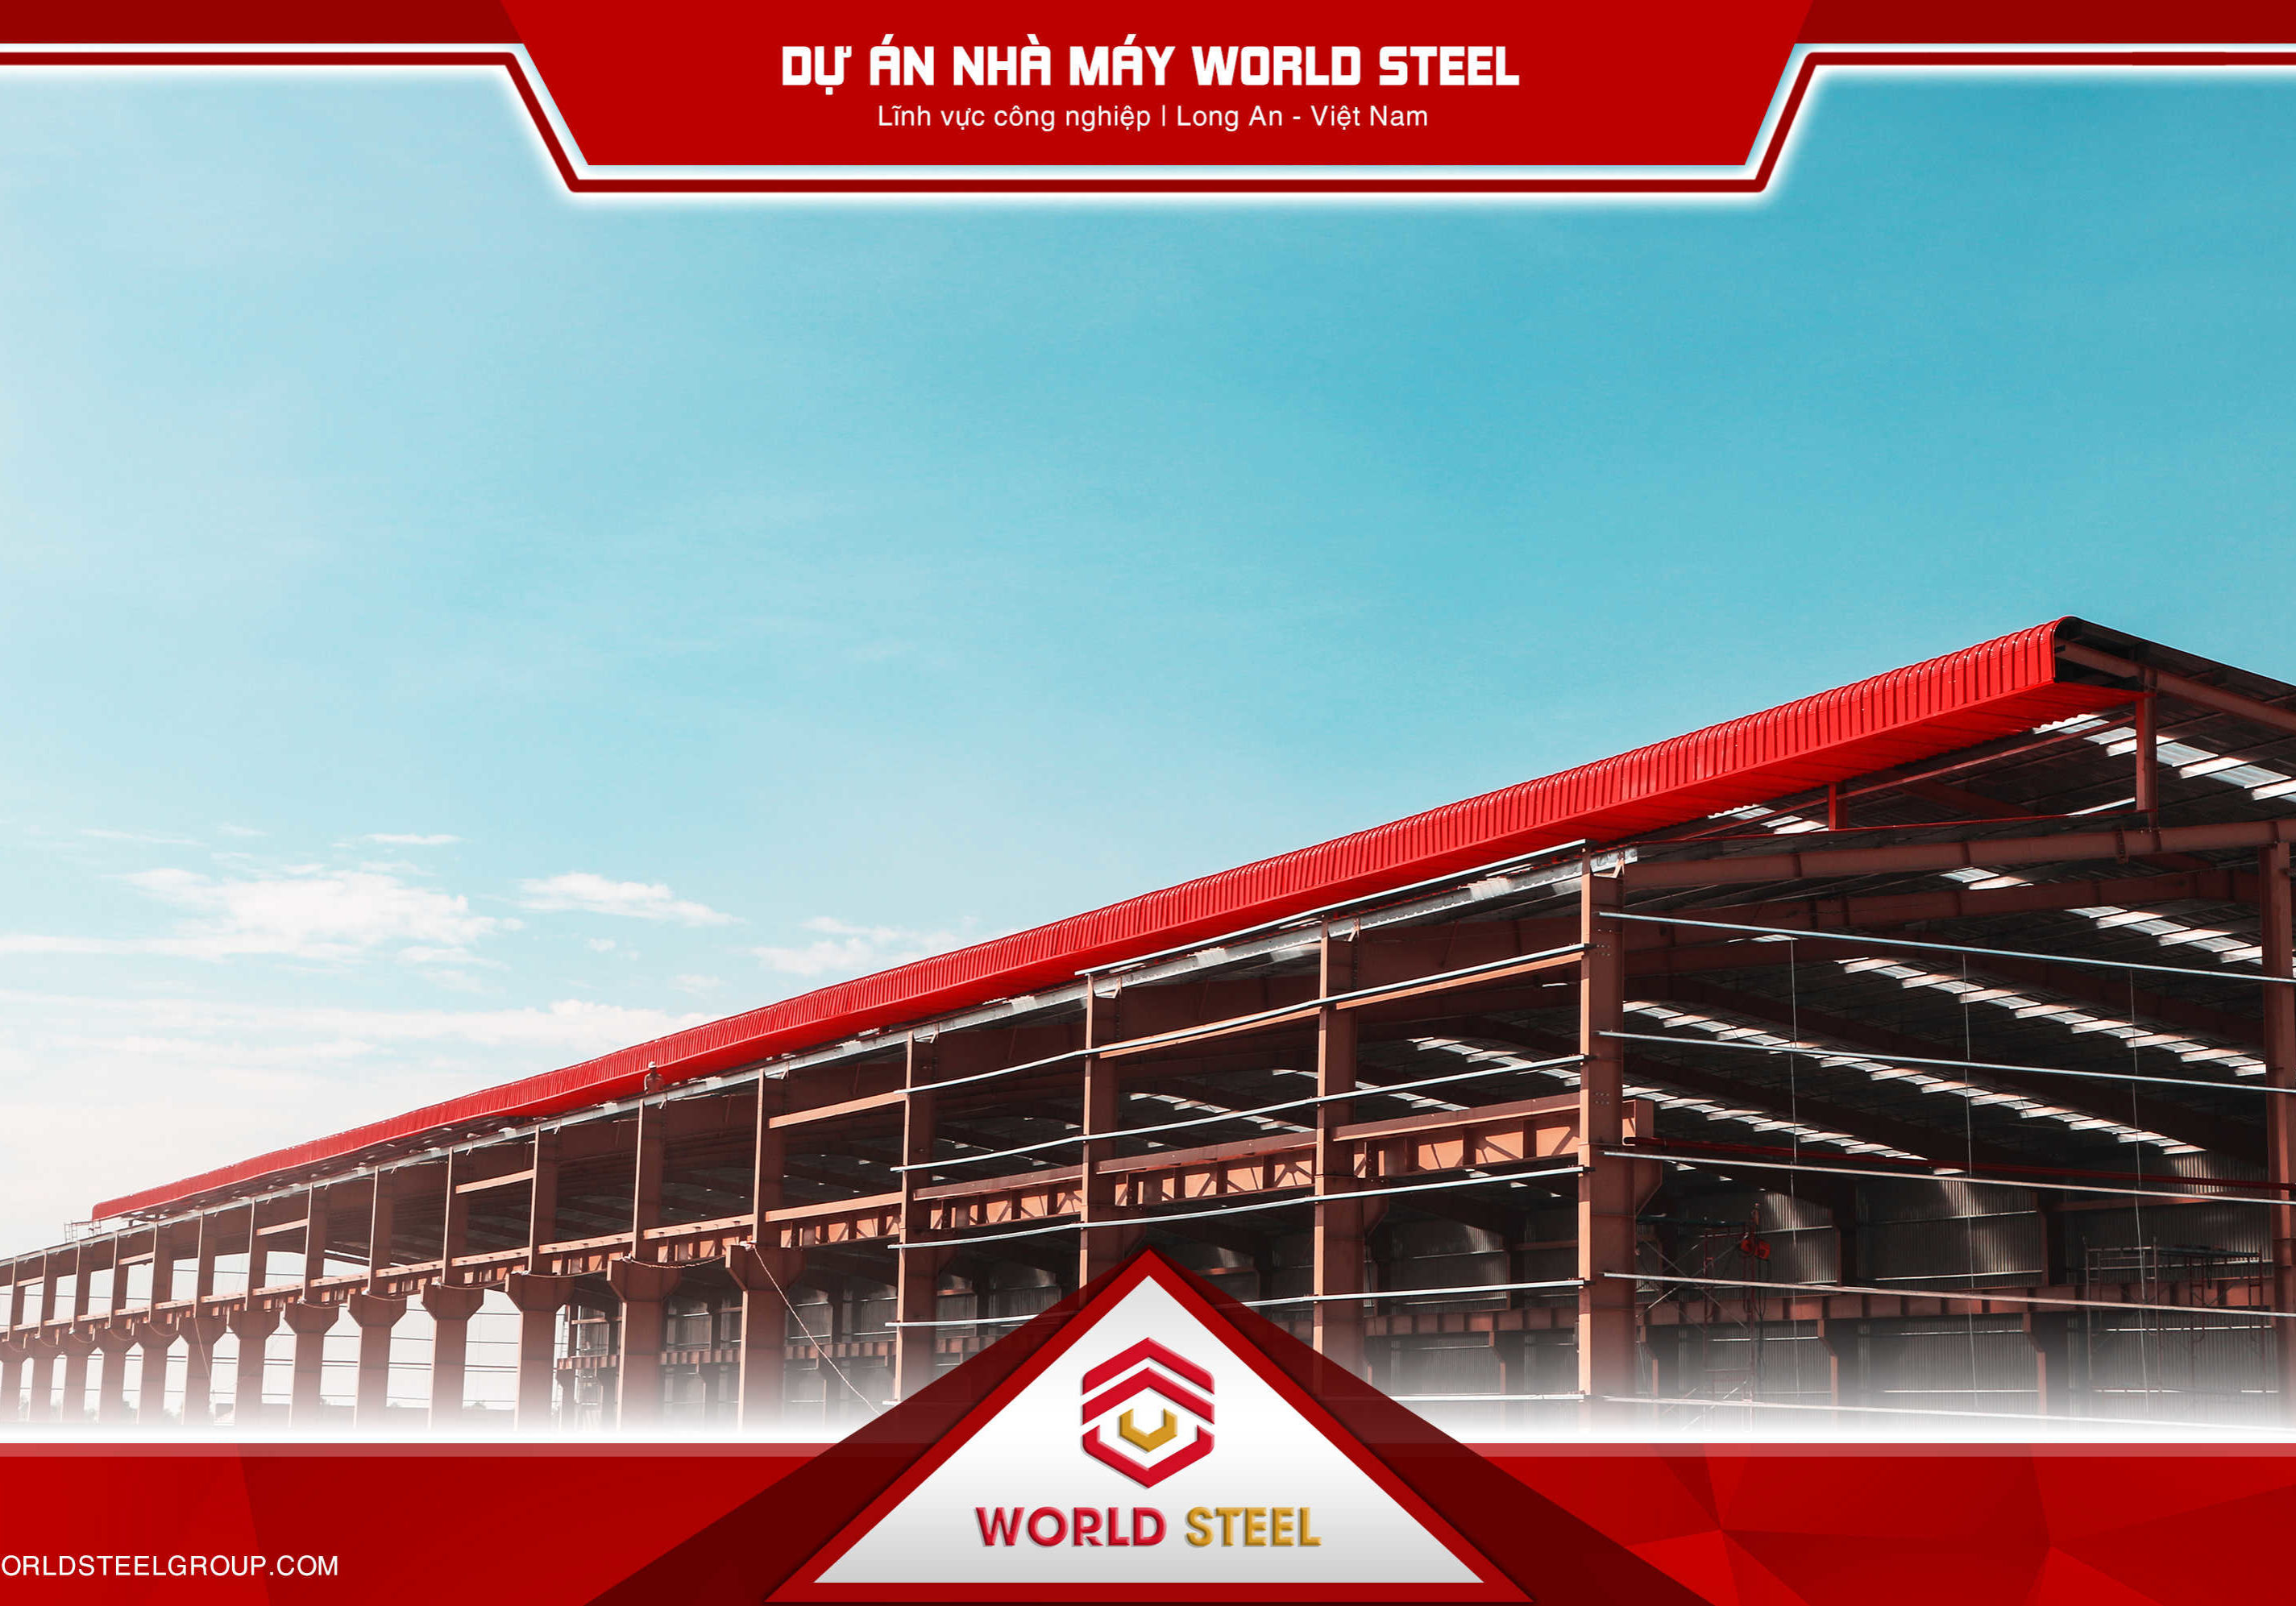 du-an-nha-may-world-steel-group-4